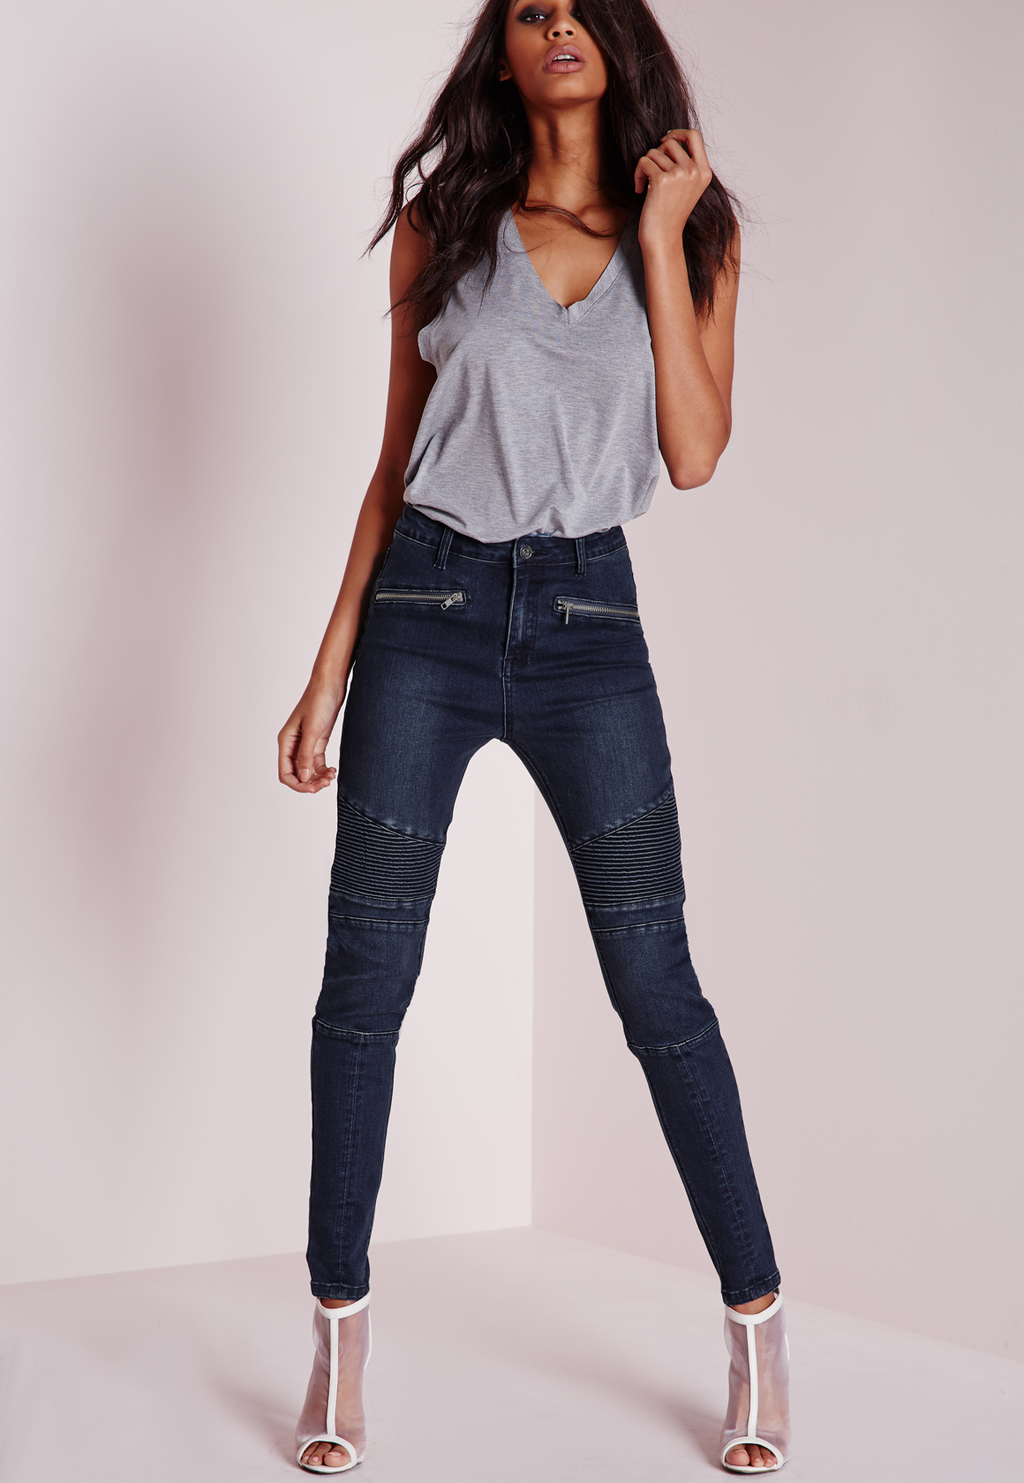 Petite High Waisted Skinny Biker Jeans Blue, Blue - style: skinny leg; length: standard; pattern: plain; waist: high rise; pocket detail: traditional 5 pocket; predominant colour: navy; occasions: casual; fibres: cotton - stretch; jeans detail: dark wash; texture group: denim; pattern type: fabric; season: a/w 2015; wardrobe: basic